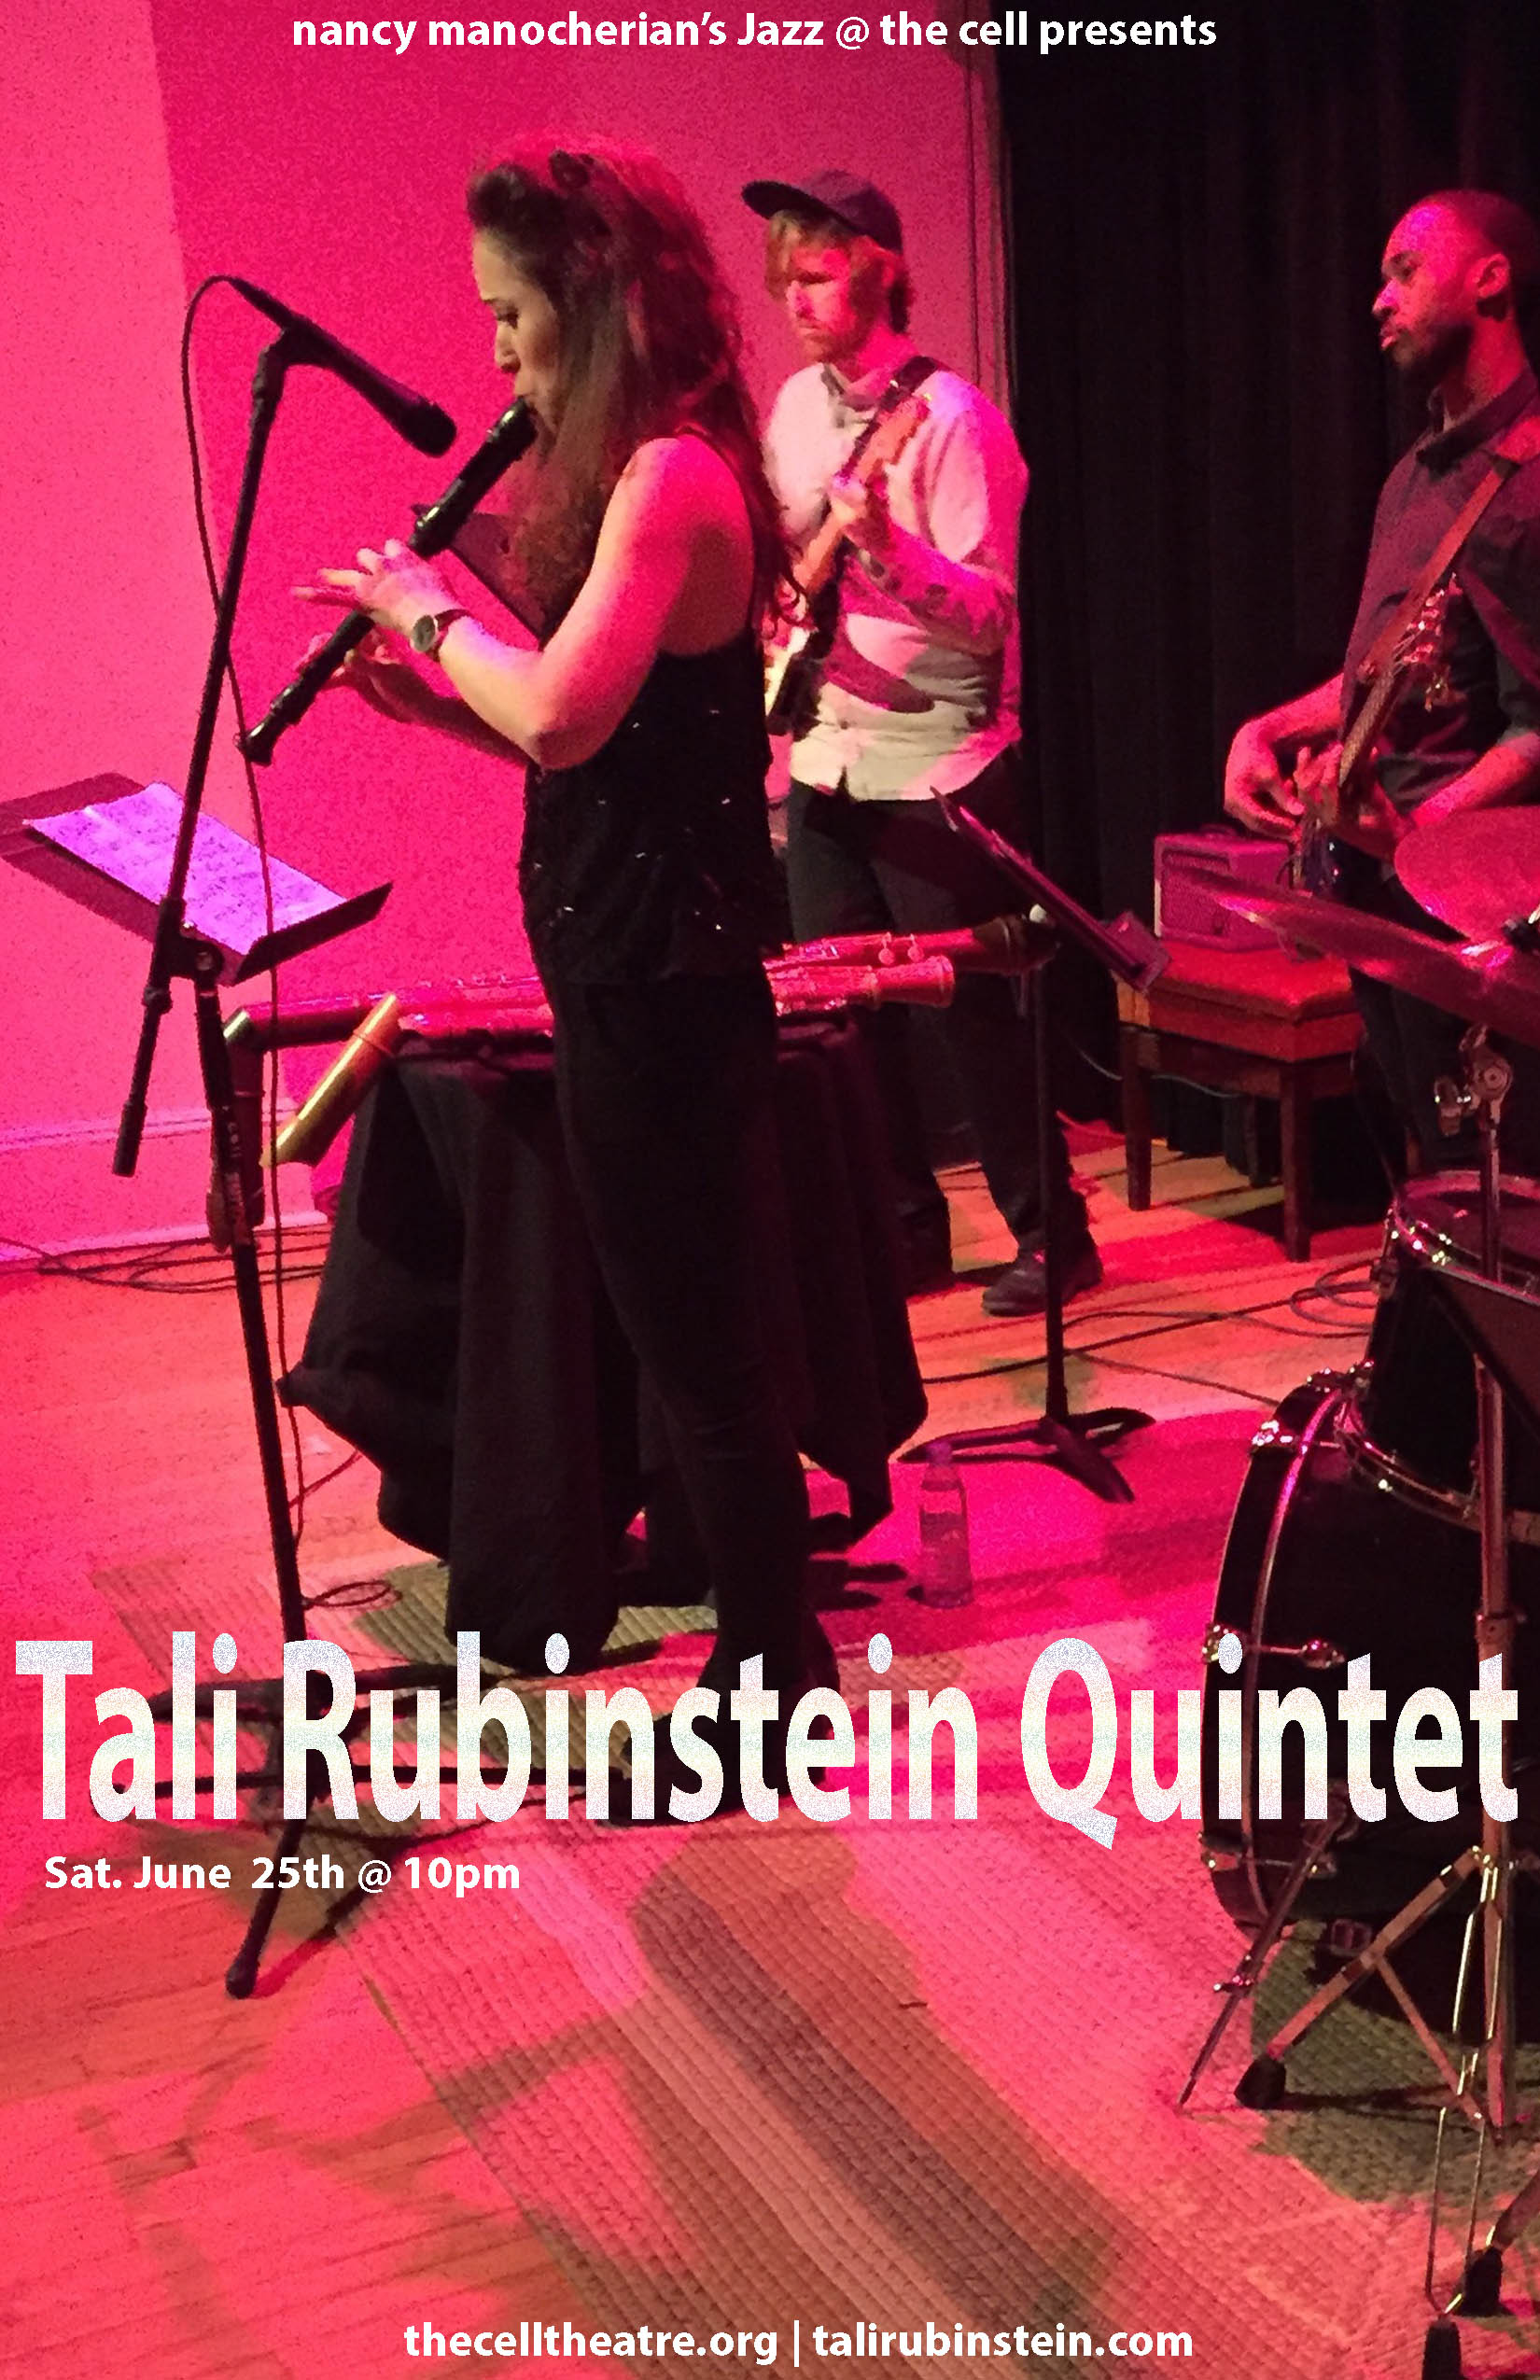 "NYC based recorder player, singer, and composer Tali Rubinstein began her musical path as a young girl. A student of recorder player and singer Bracha Kol, she has been professionally trained in classical recorder performance for 15 years, later on to dive into the jazz and be-bop world with jazz flautist Ilan Salem. Tali has graduated with honors from prestigious music institutions in Israel: Thelma Yellin High School of the Arts (classical performance), Rimon School of Jazz and Contemporary Music, and The Jerusalem Academy of Music and Dance (jazz performance). Recently, Tali graduated with honors from Berklee College of Music, Boston.  During her studies at Berklee College Tali was discovered by multiple Grammy Award winning Spanish producer Javier Limón.  Tali has been collaborating with Limón ever since, including on his masterpiece album ""Promesas De Tierra"", and on the 2015 Latin Grammy Award winning album ""Entre 20 Aguas"" - a tribute to Paco De Lucia (alongside Chick Corea, Dhafer Youssef, Michel Camilo, Chucho Valdéz and Alejandro Sanz)."